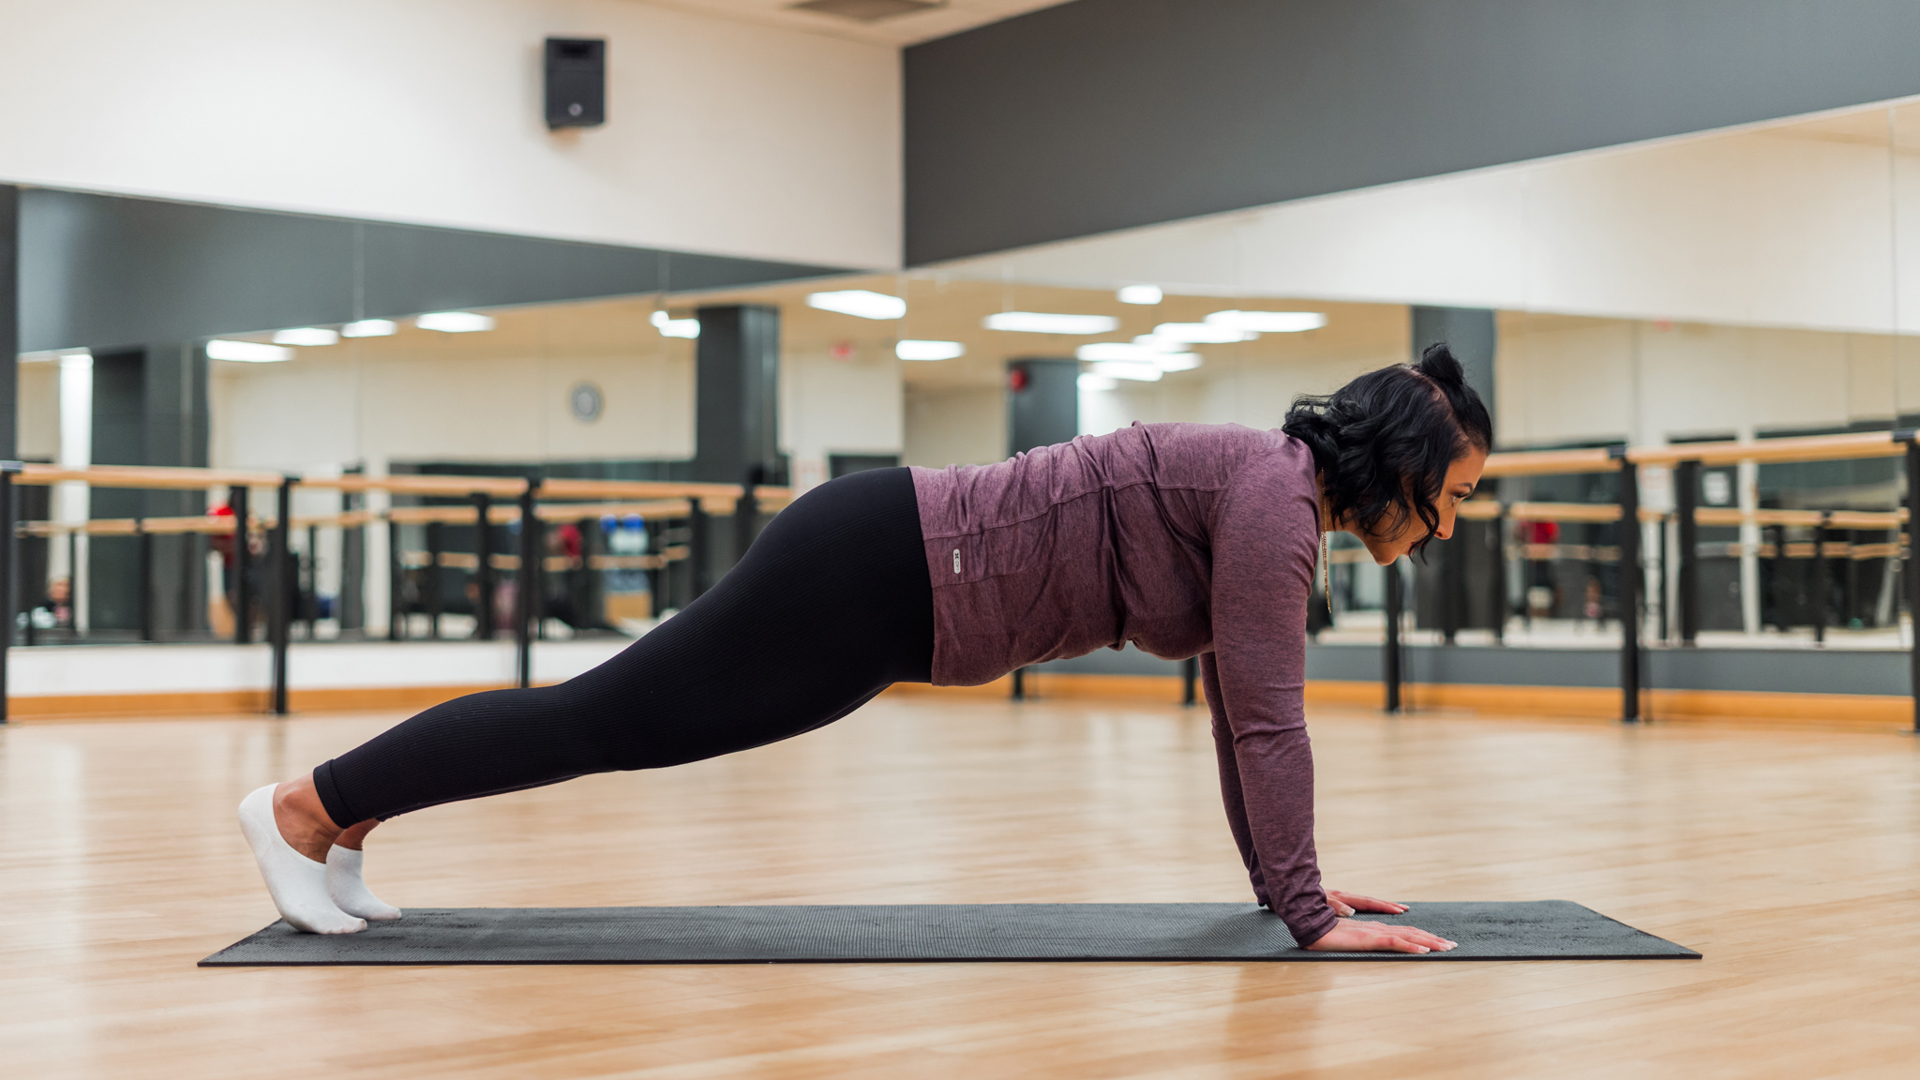 Warm up with these 4 yoga poses | The GoodLife Fitness Blog